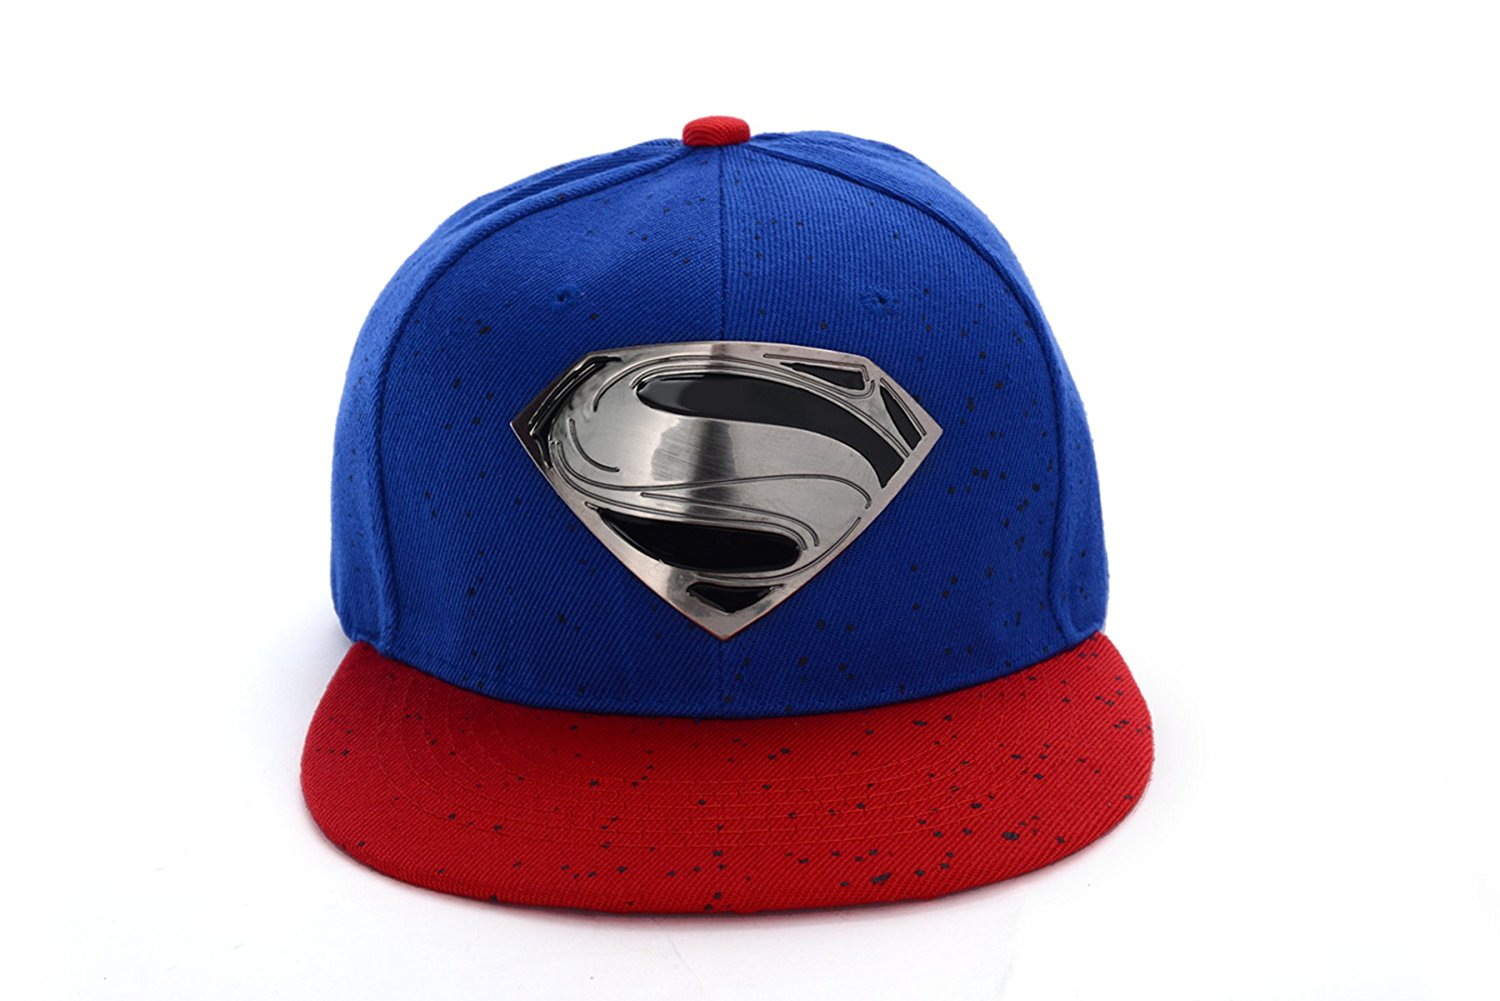 reputable site bf718 6c99b ... wholesale snapback hat super hero superman baseball caps adjustable hip  hop hat 42c29 2f275